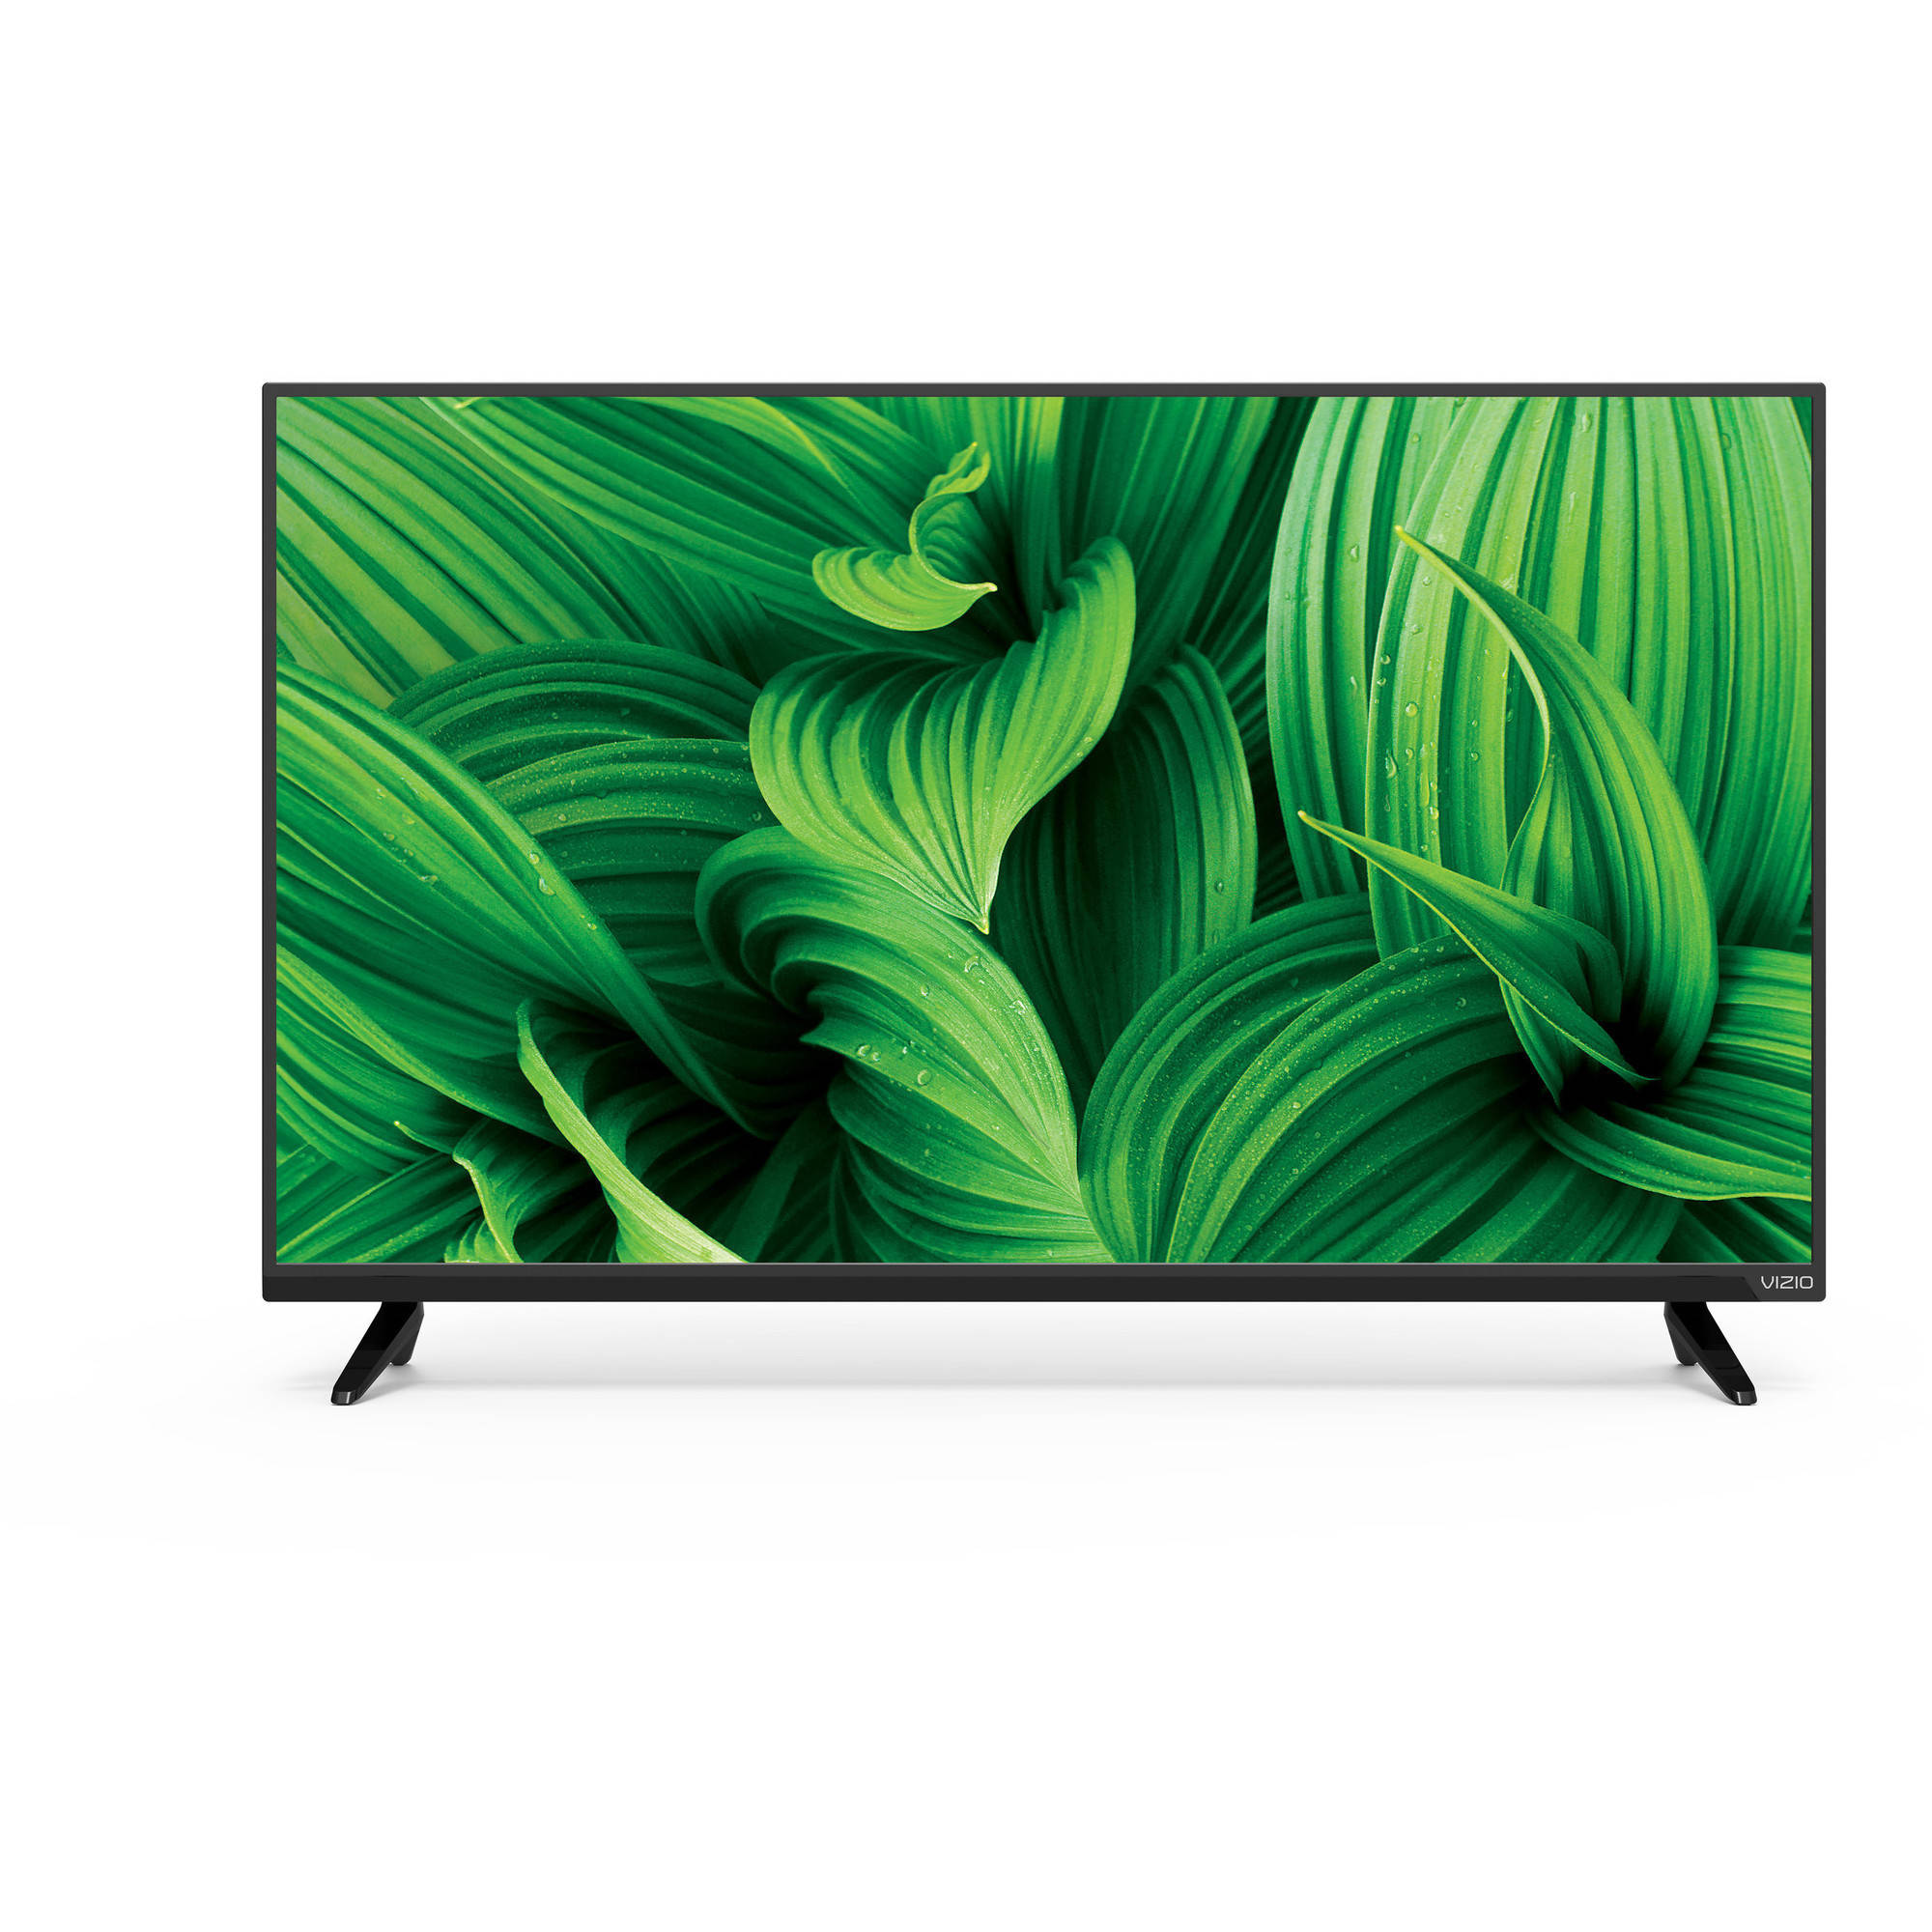 "VIZIO D-Series D43n-E1 43"" 1080p 60Hz LED HDTV"